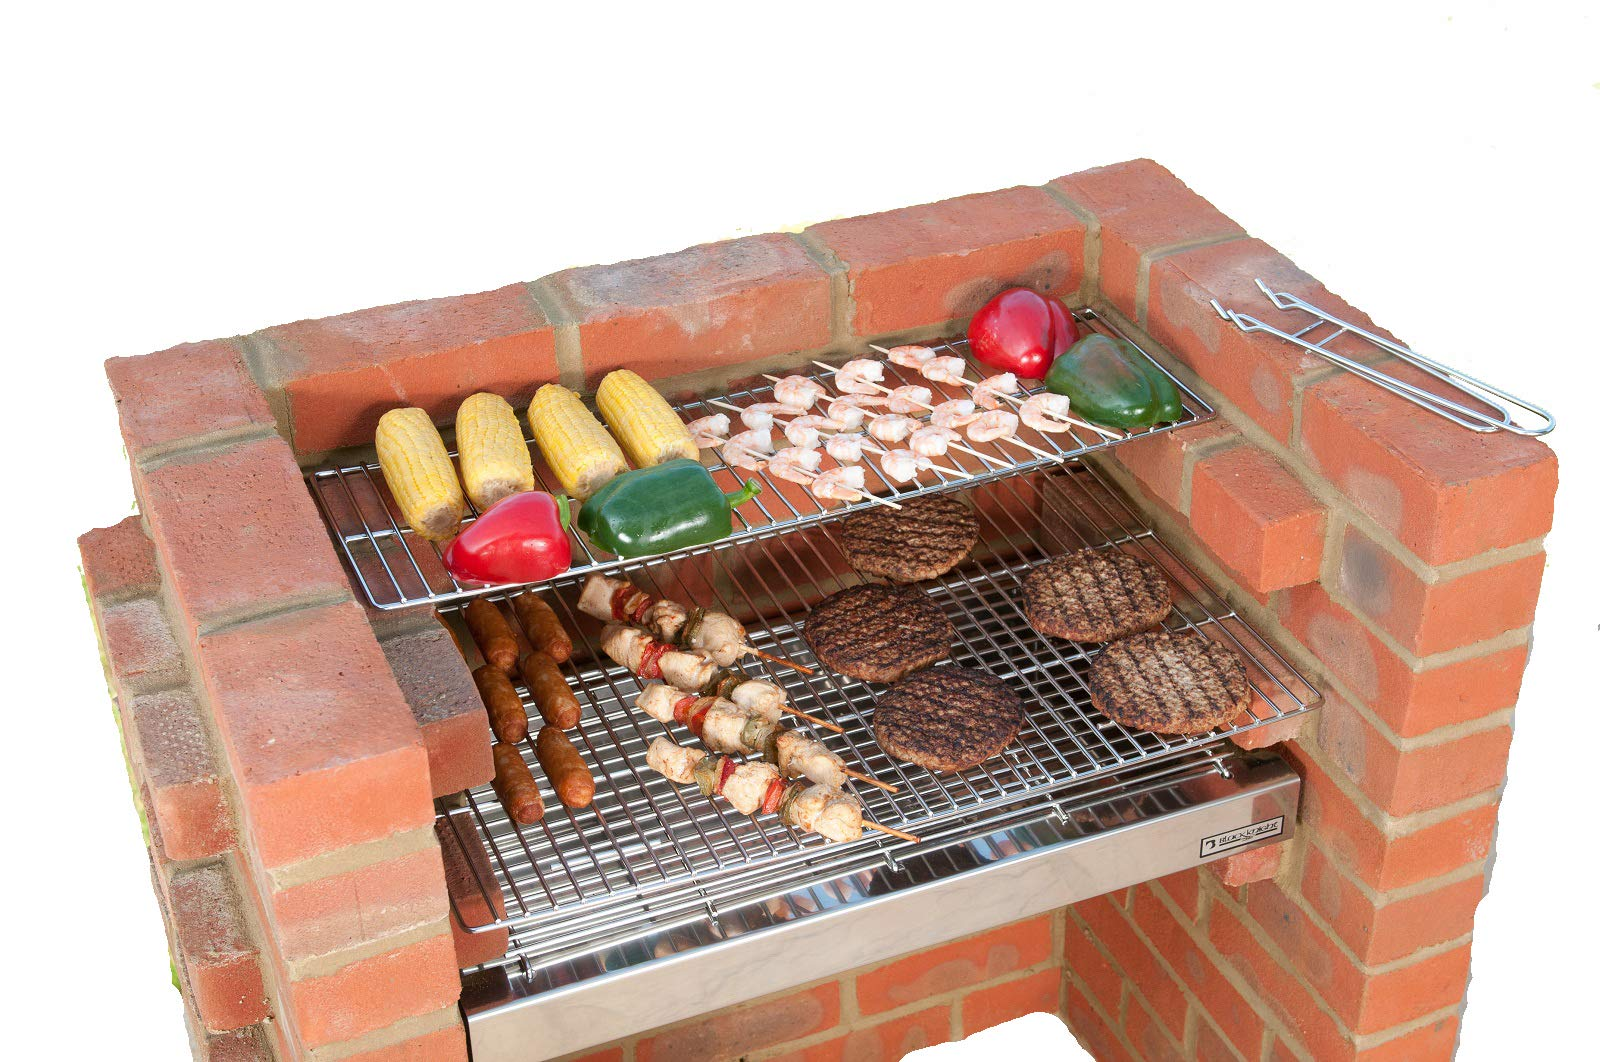 Black Knight 501 Brick Built in Stainless Steel BBQ Grill Kit with Warming Rack by Black Knight